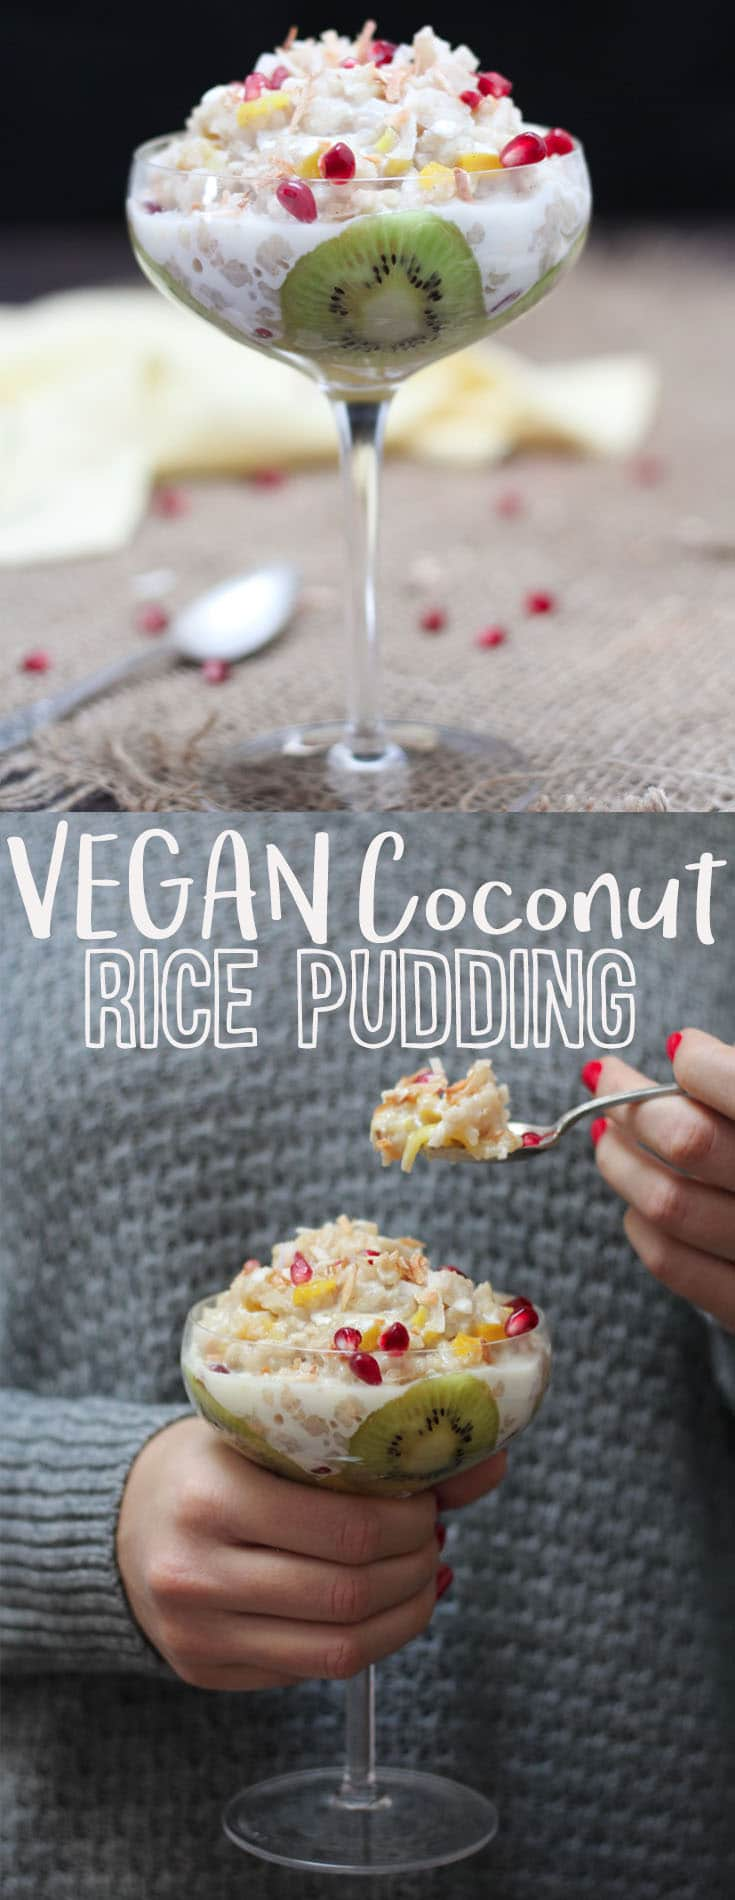 I share my favourite recipe for vegan coconut rice pudding with mangos and kiwi as a go-to plant-based gluten free dessert.